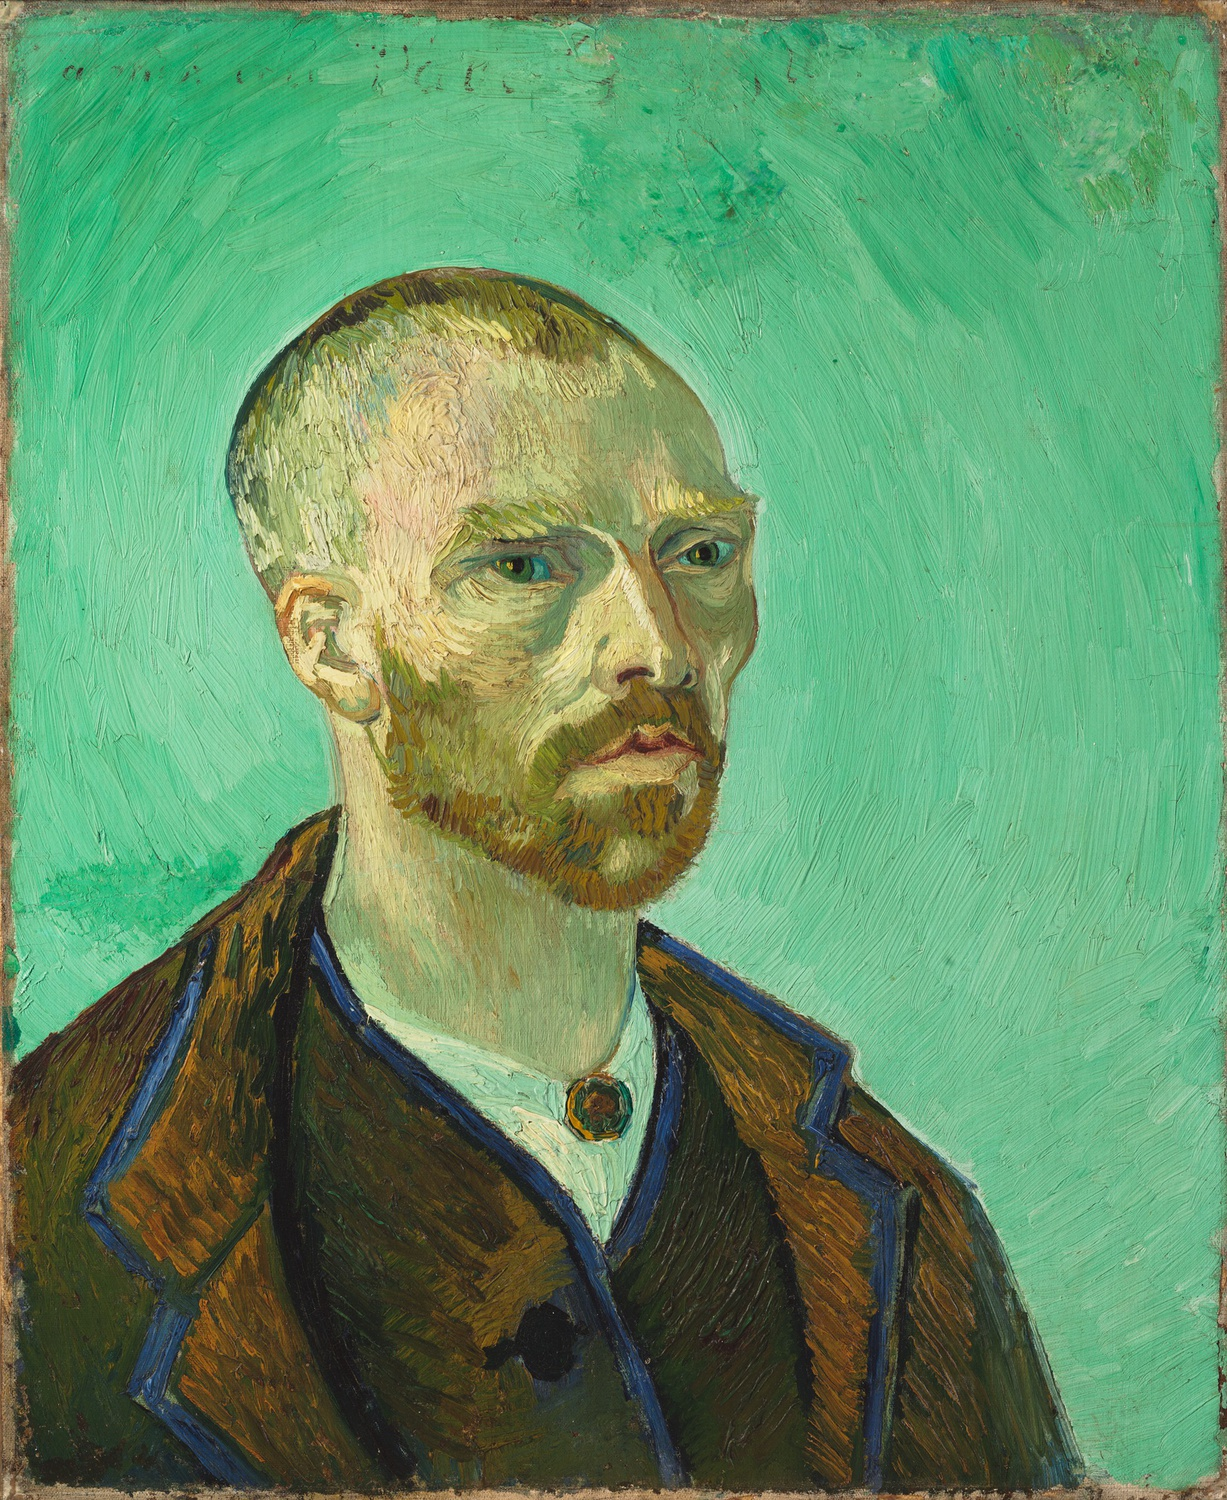 Van Gogh Self-Portrait Dedicated to Paul Gauguin